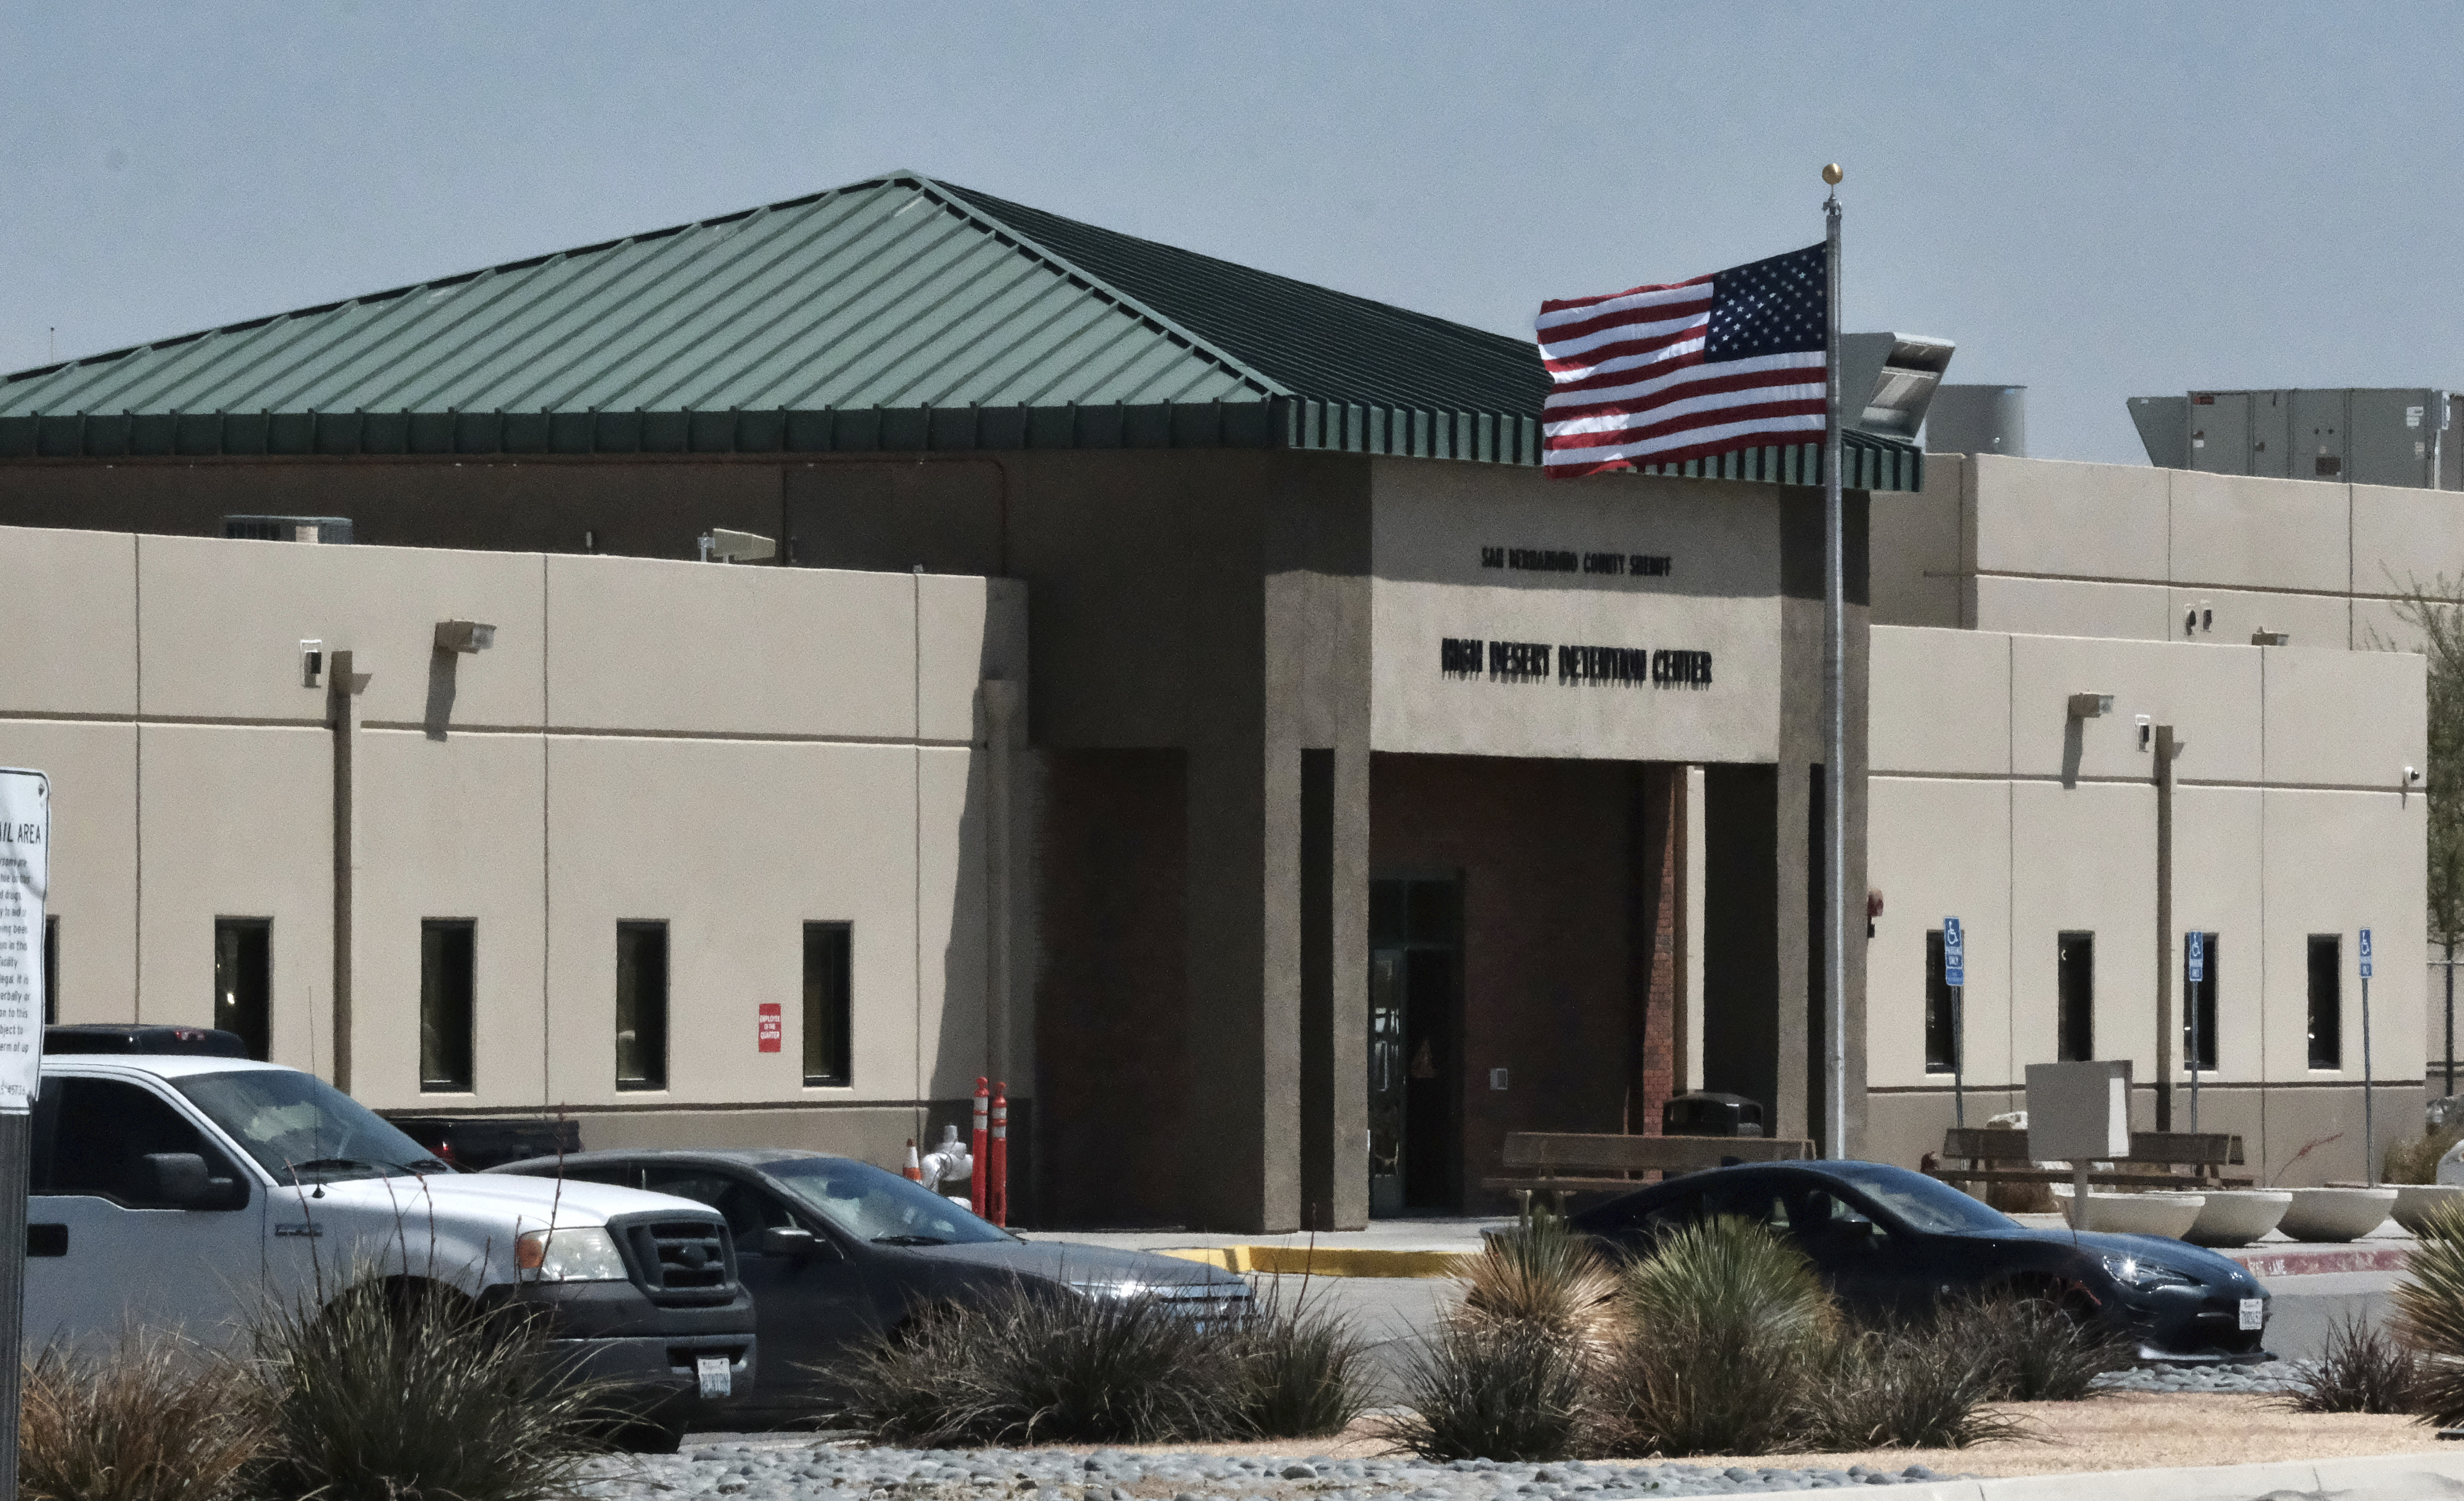 Agency watchdog slams conditions at ICE detention facilities